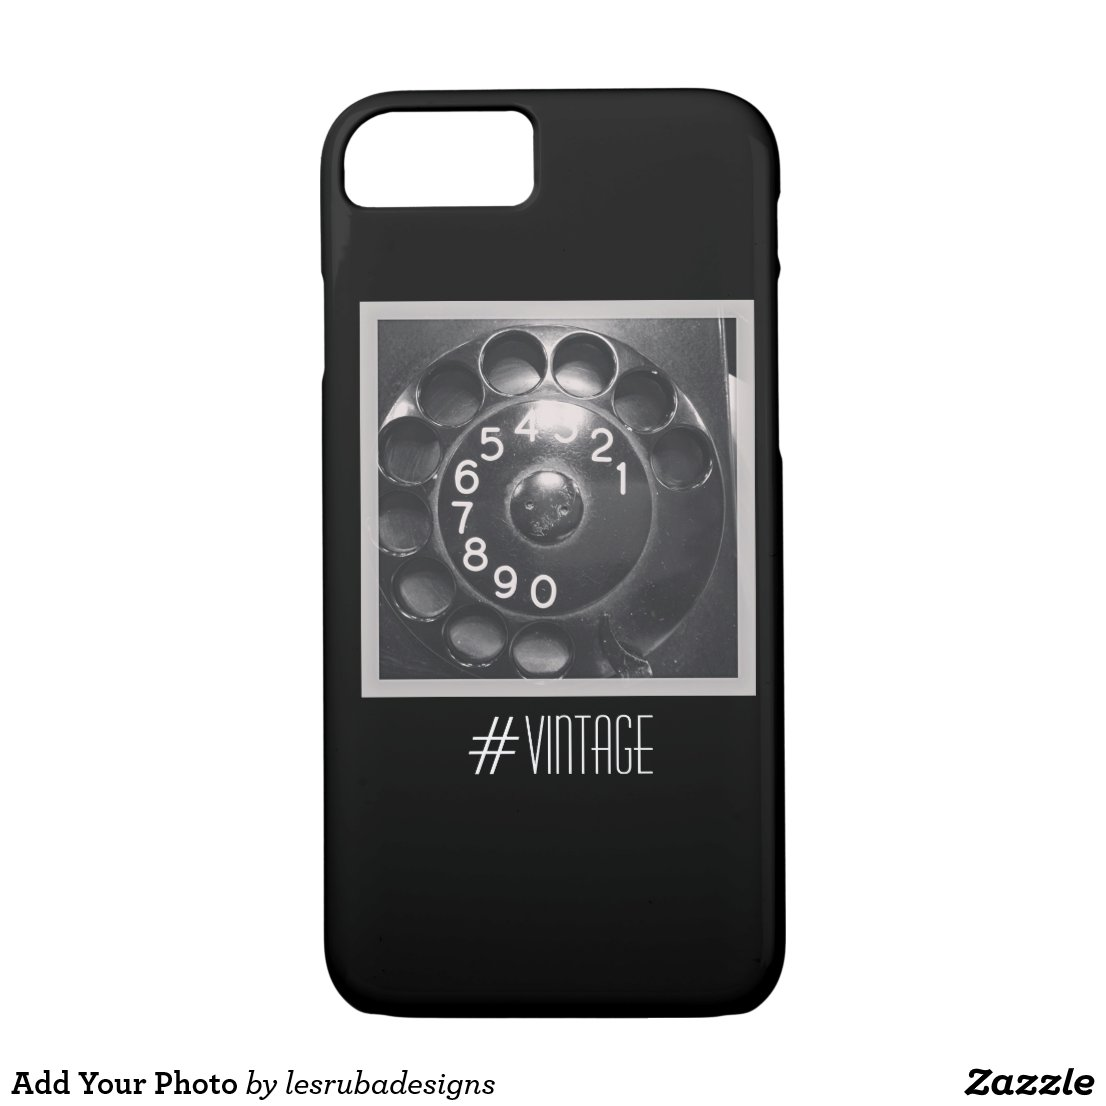 Add Your Photo iphone case